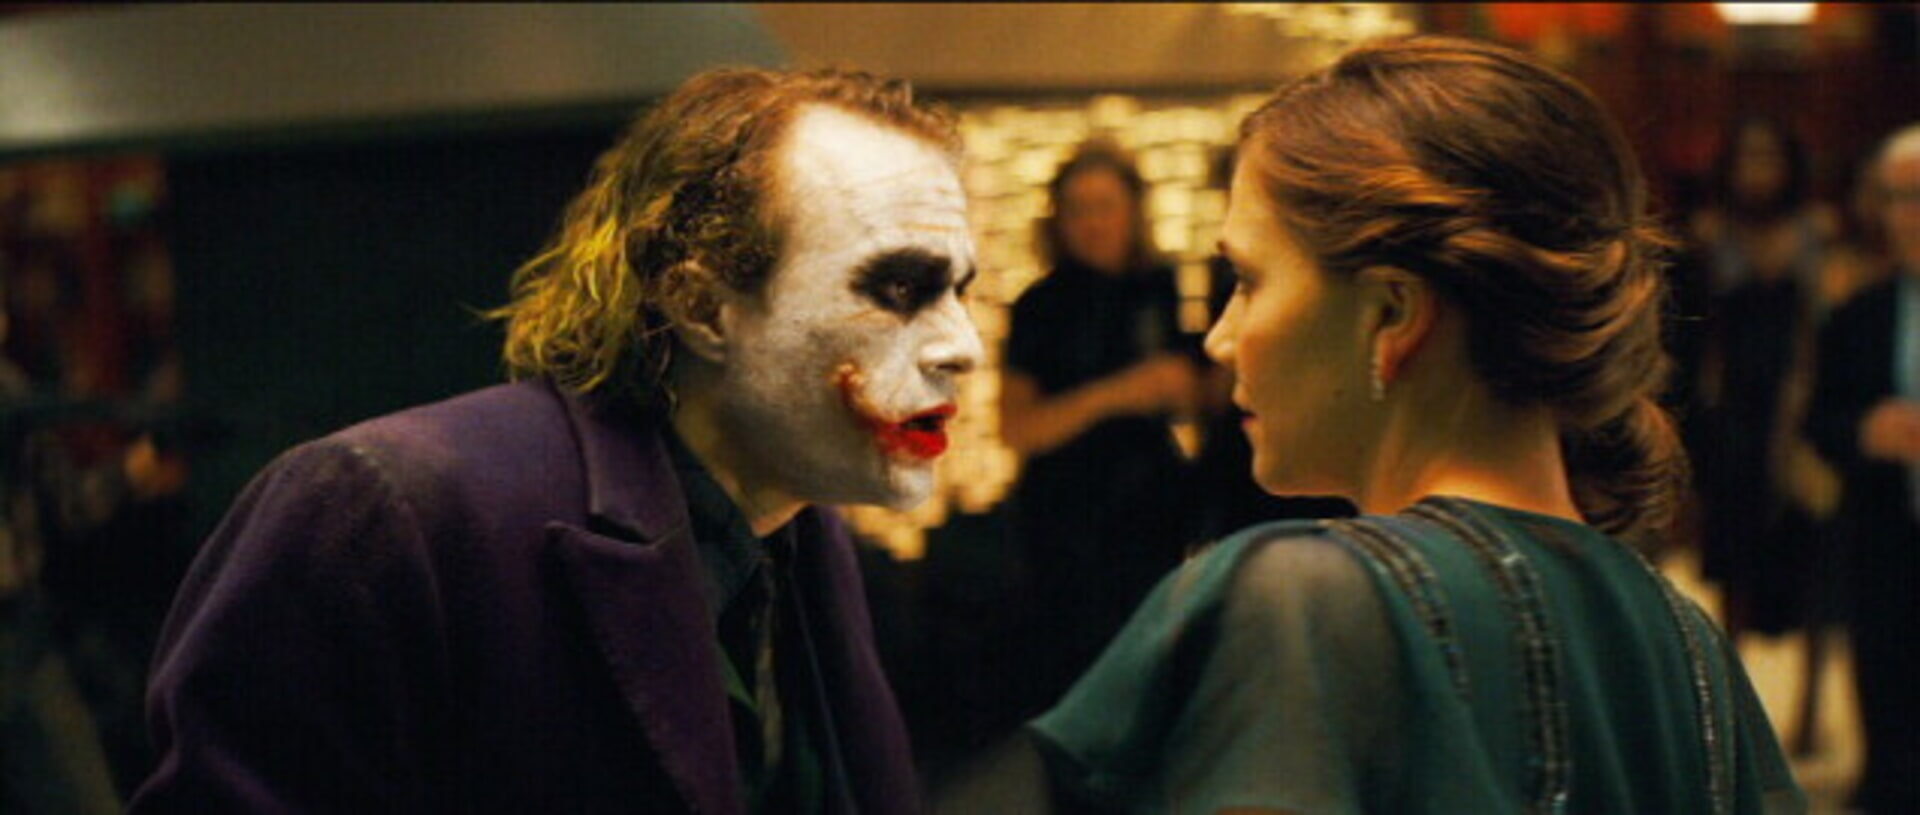 The Dark Knight - Image 42